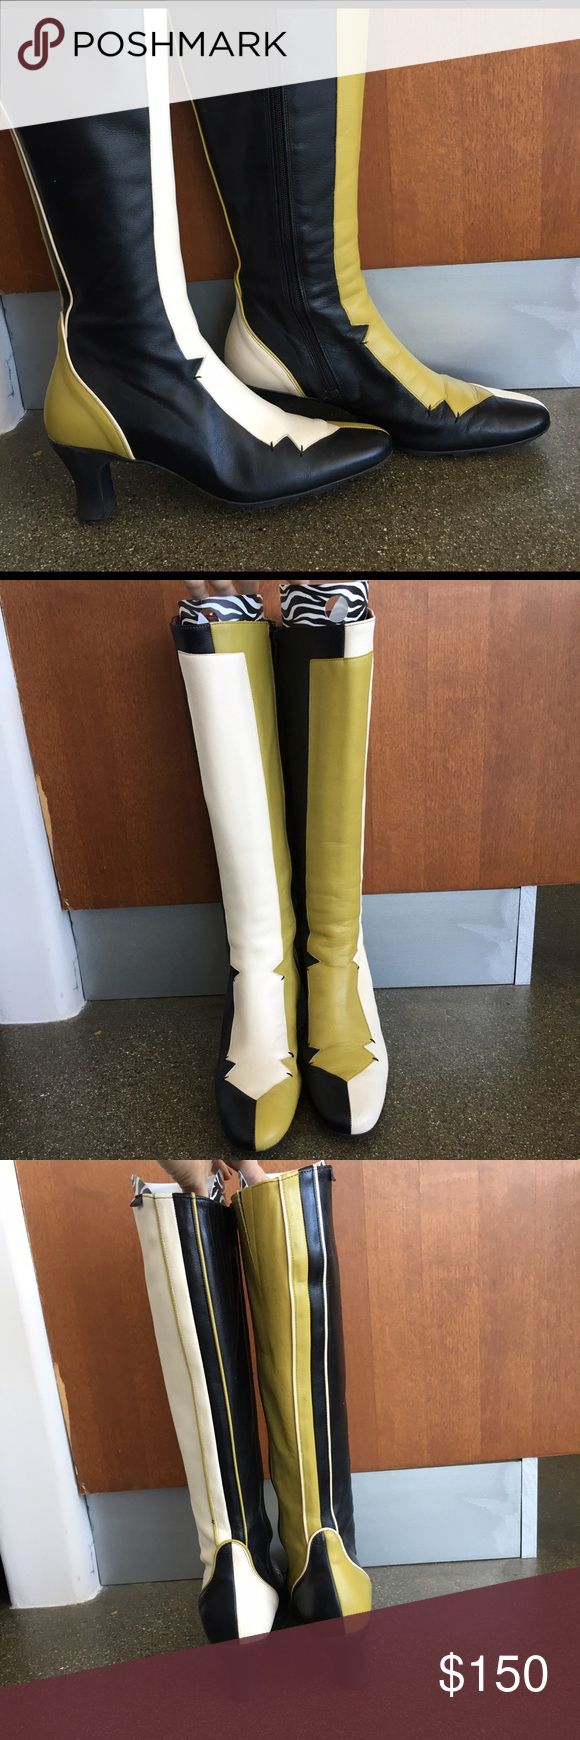 Selling this Mod Camper Go-Go Boots Two Toned Funky on Poshmark! My username is: dollpower. #shopmycloset #poshmark #fashion #shopping #style #forsale #Camper #Shoes